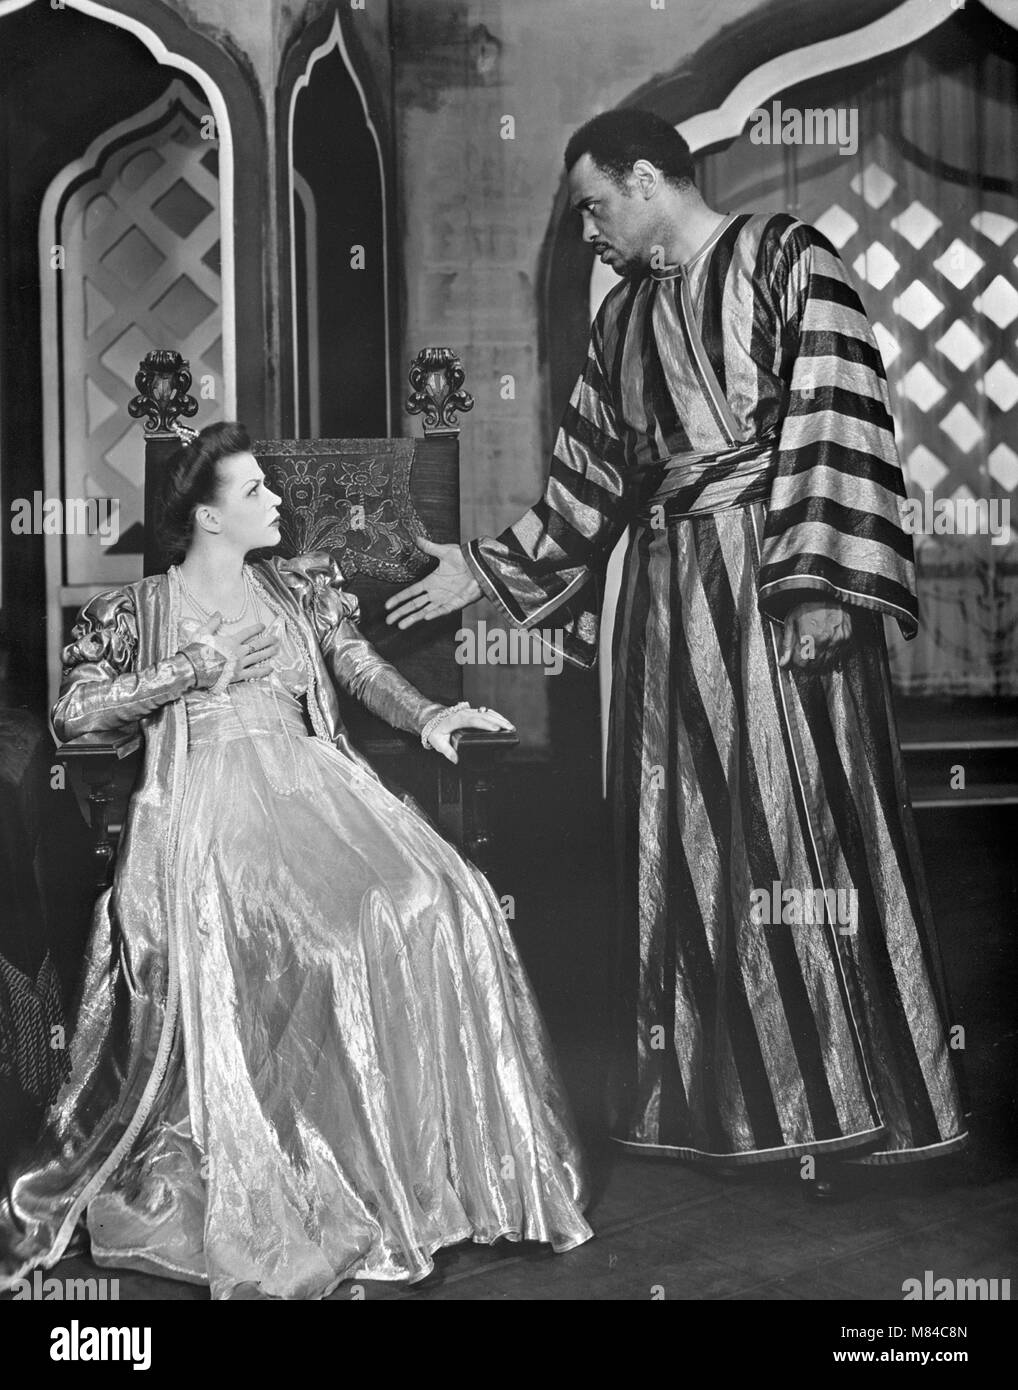 Othello. The American actor and singer Paul Robeson (1898-1976) as Othello and Uta Hagen as Desdemona in a 1943/4 - Stock Image